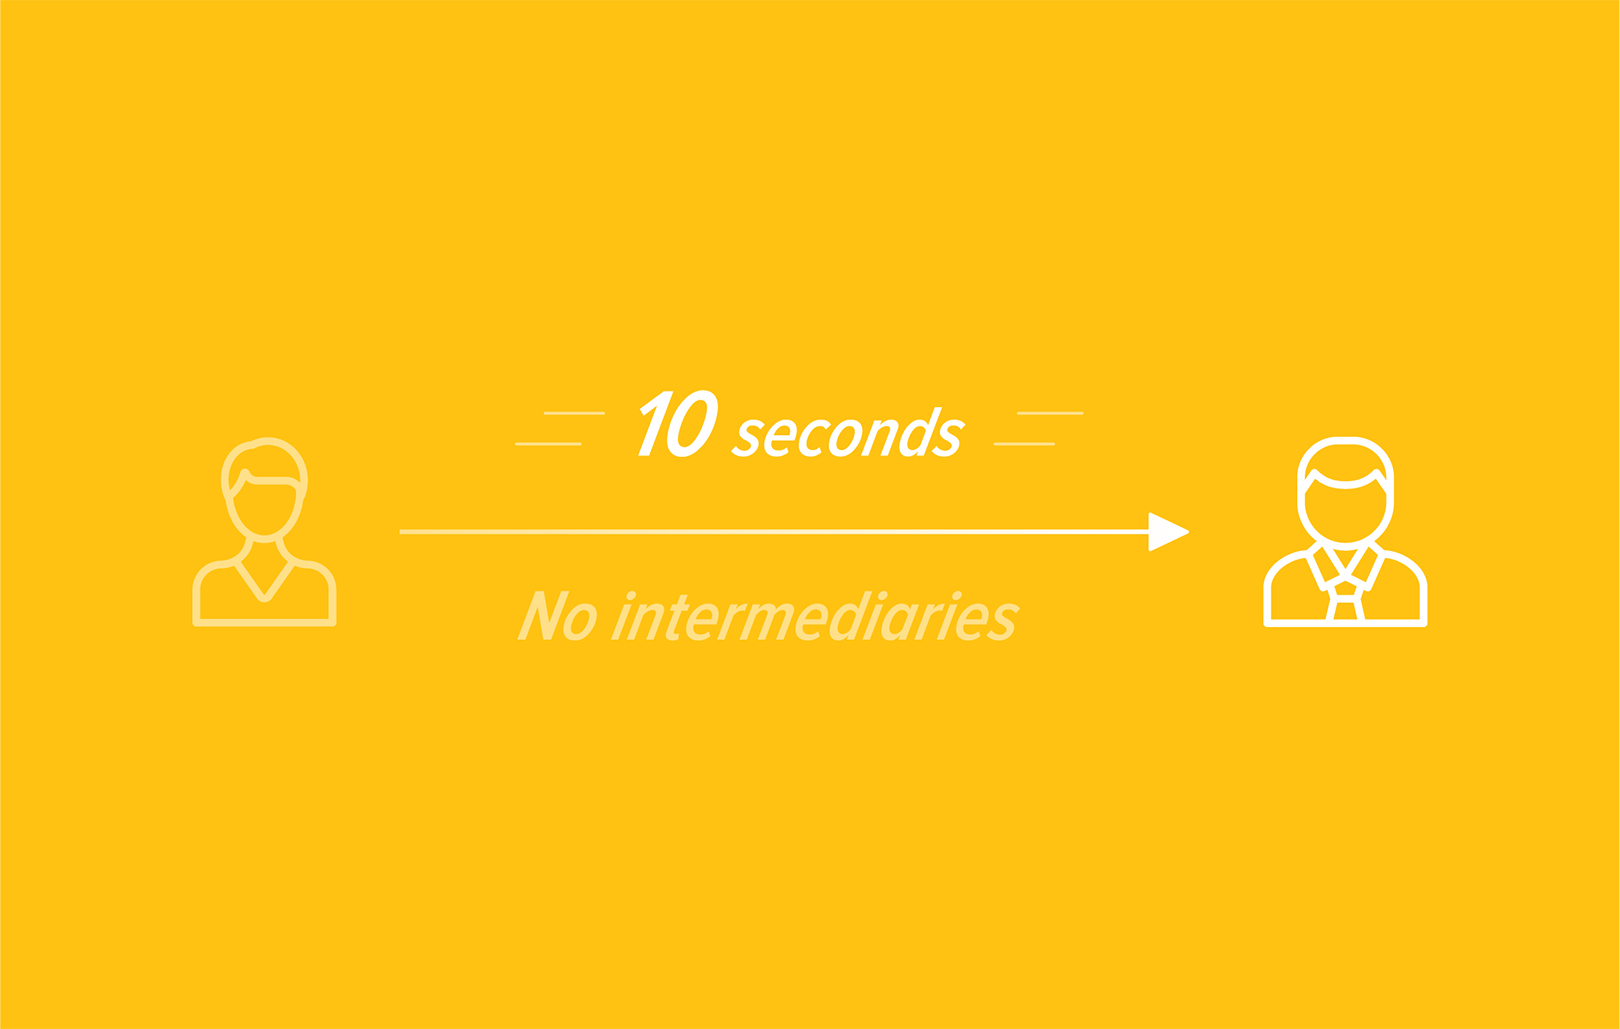 SEPA Instant Credit Transfer — Get paid in less than 10 seconds without any intermediaries